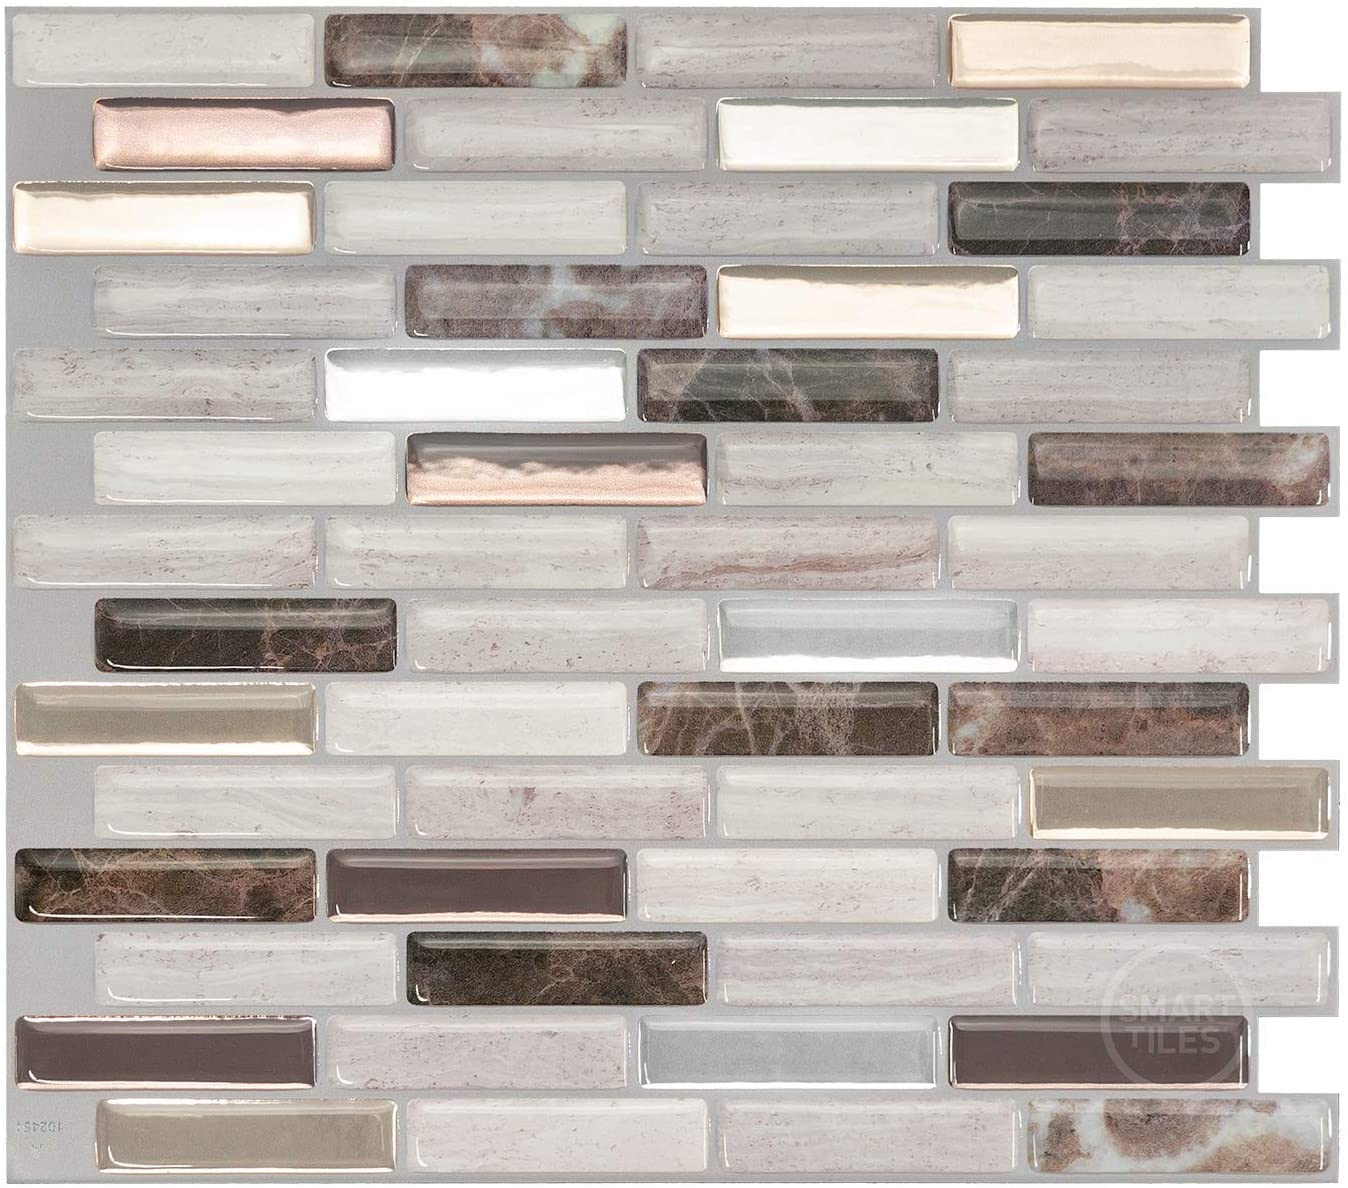 Smart Tiles Self Adhesive Wall Tiles Milenza Genoa 4 Sheets Of 10 20 X 9 00 25 91 Cm X 22 86 Cm Kitchen And Bathroom Stick On Tiles 3d Peel And